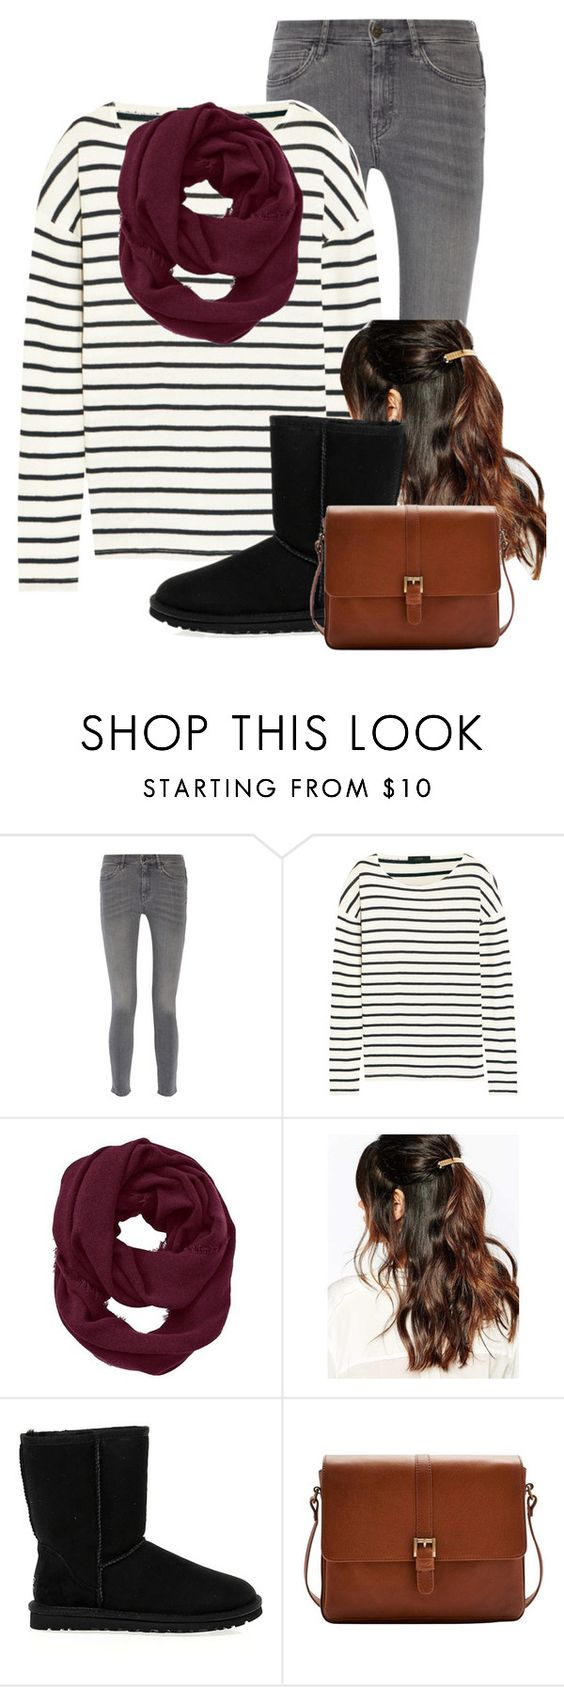 """""""Christmas haul~2015"""" by snowflake-on-fire ❤ liked on Polyvore featuring MiH Jeans, J.Crew, Athleta, Suzywan DELUXE, UGG Australia, Joules, Christmashaul and christmashaul2015"""